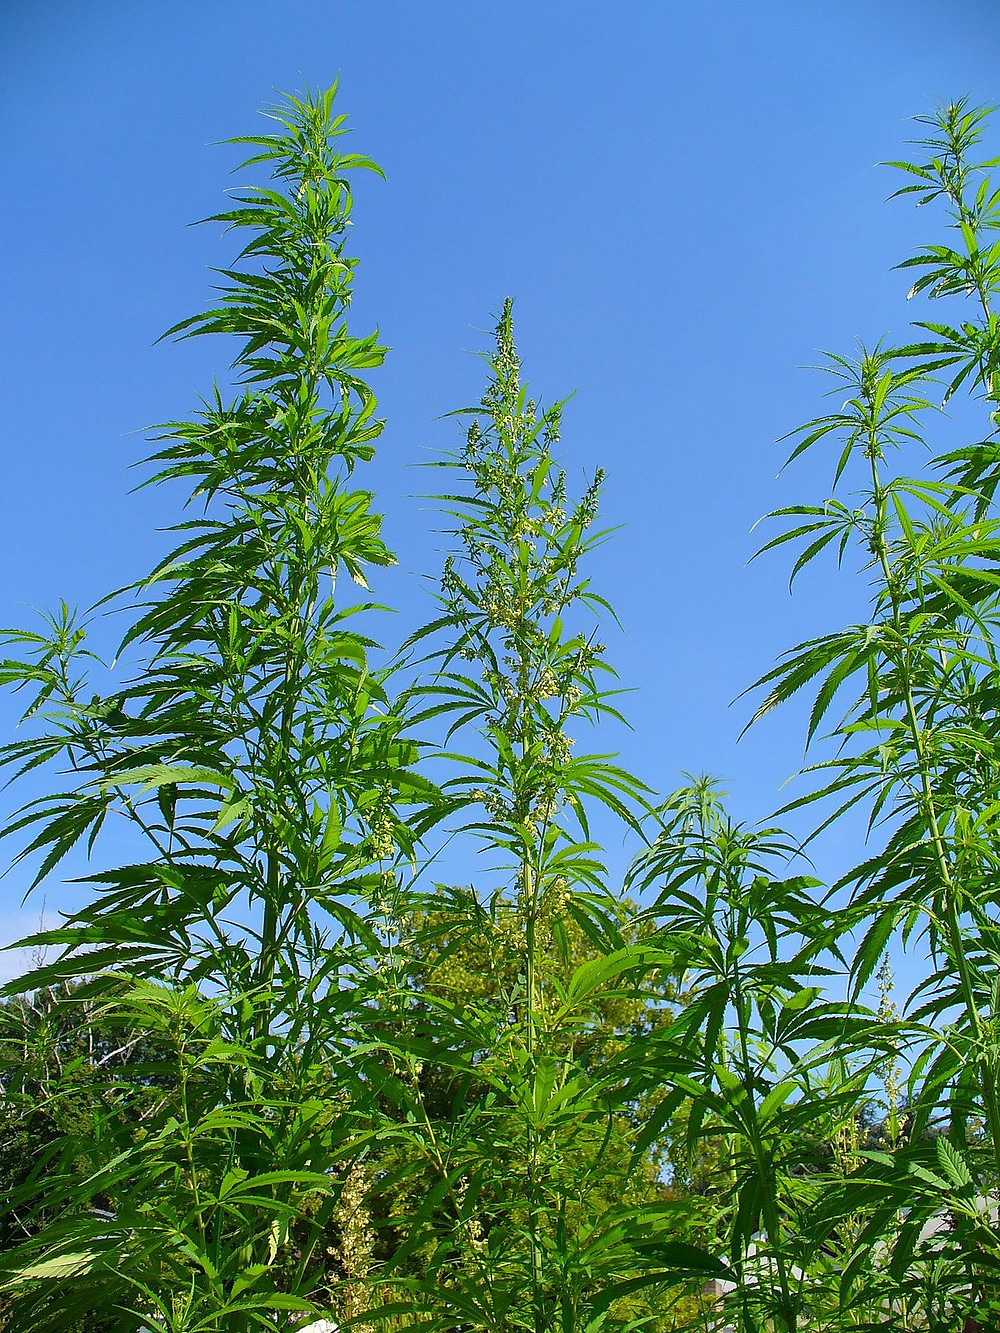 Hemp (Cannabis Sativa) is the source of Hemp Extracts like the Cannabinoid CBD.